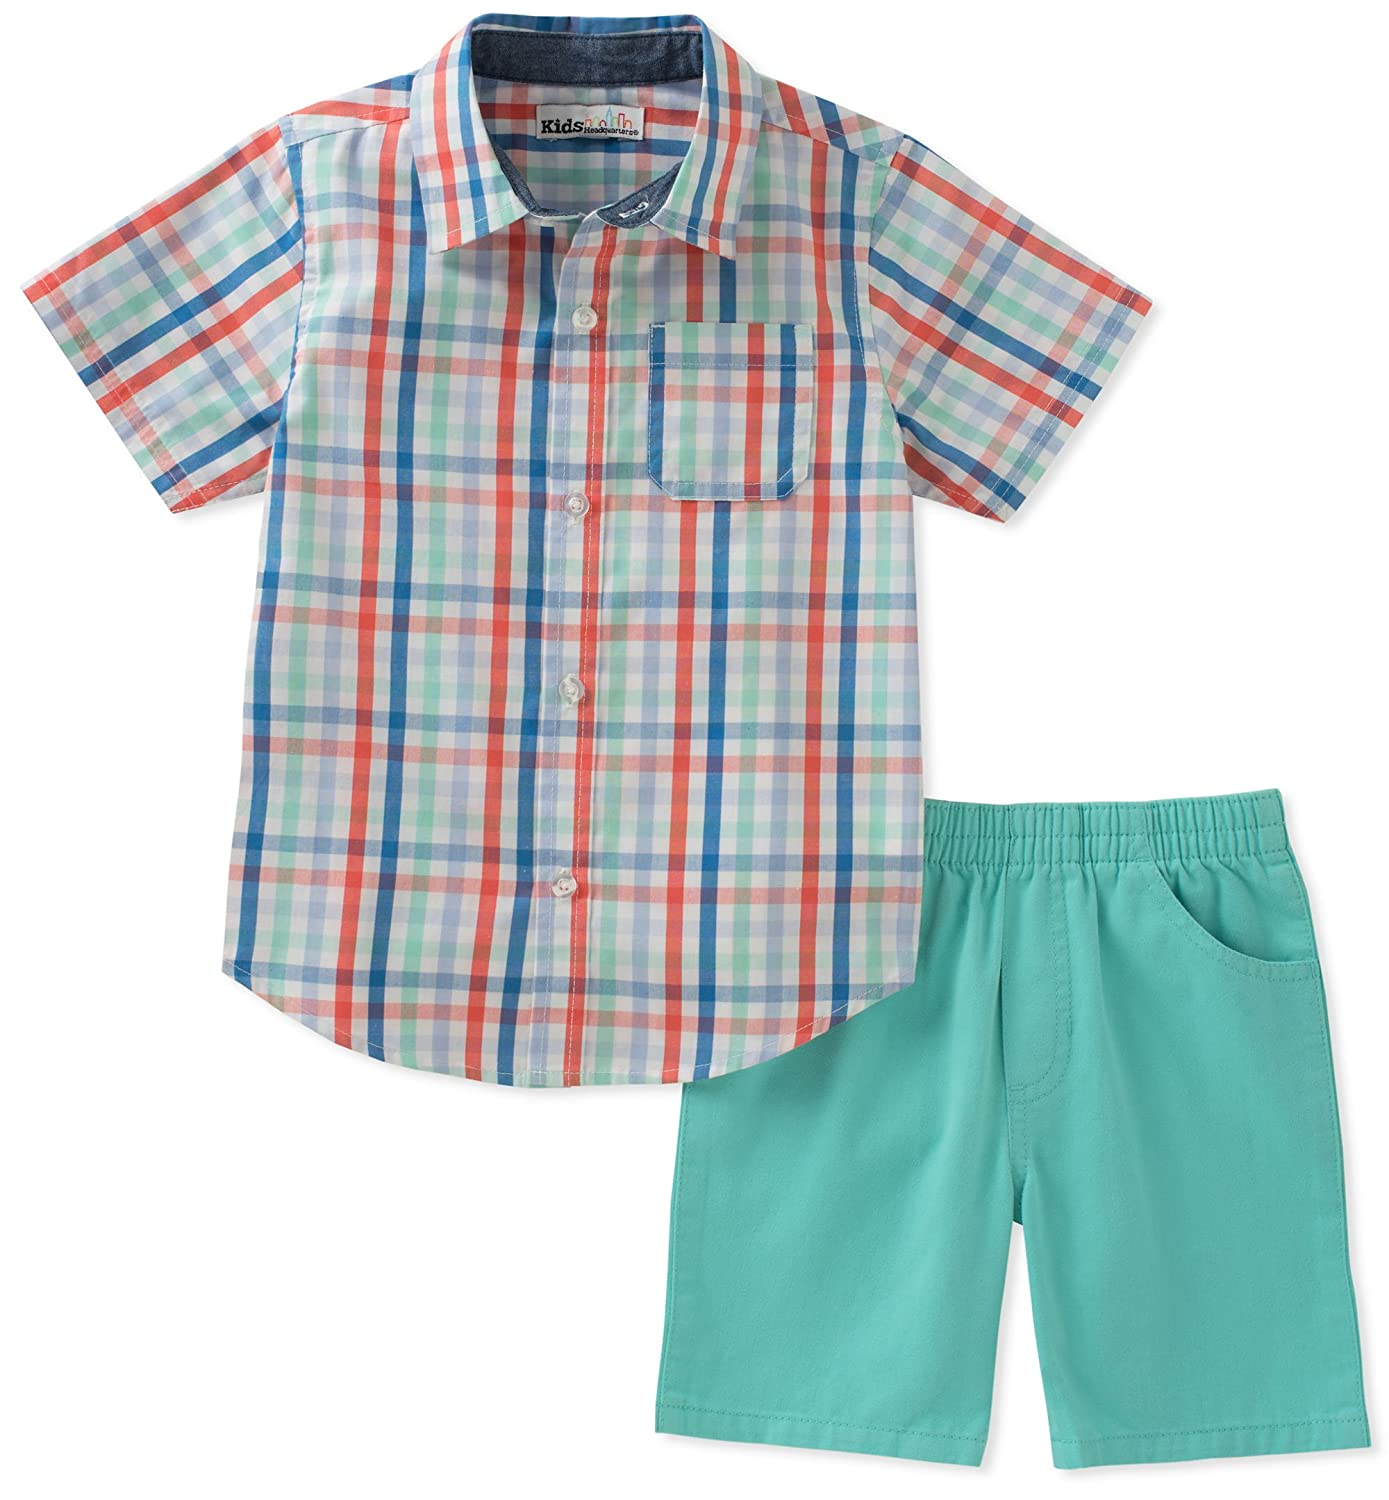 Kids Headquarters SHORTS ボーイズ